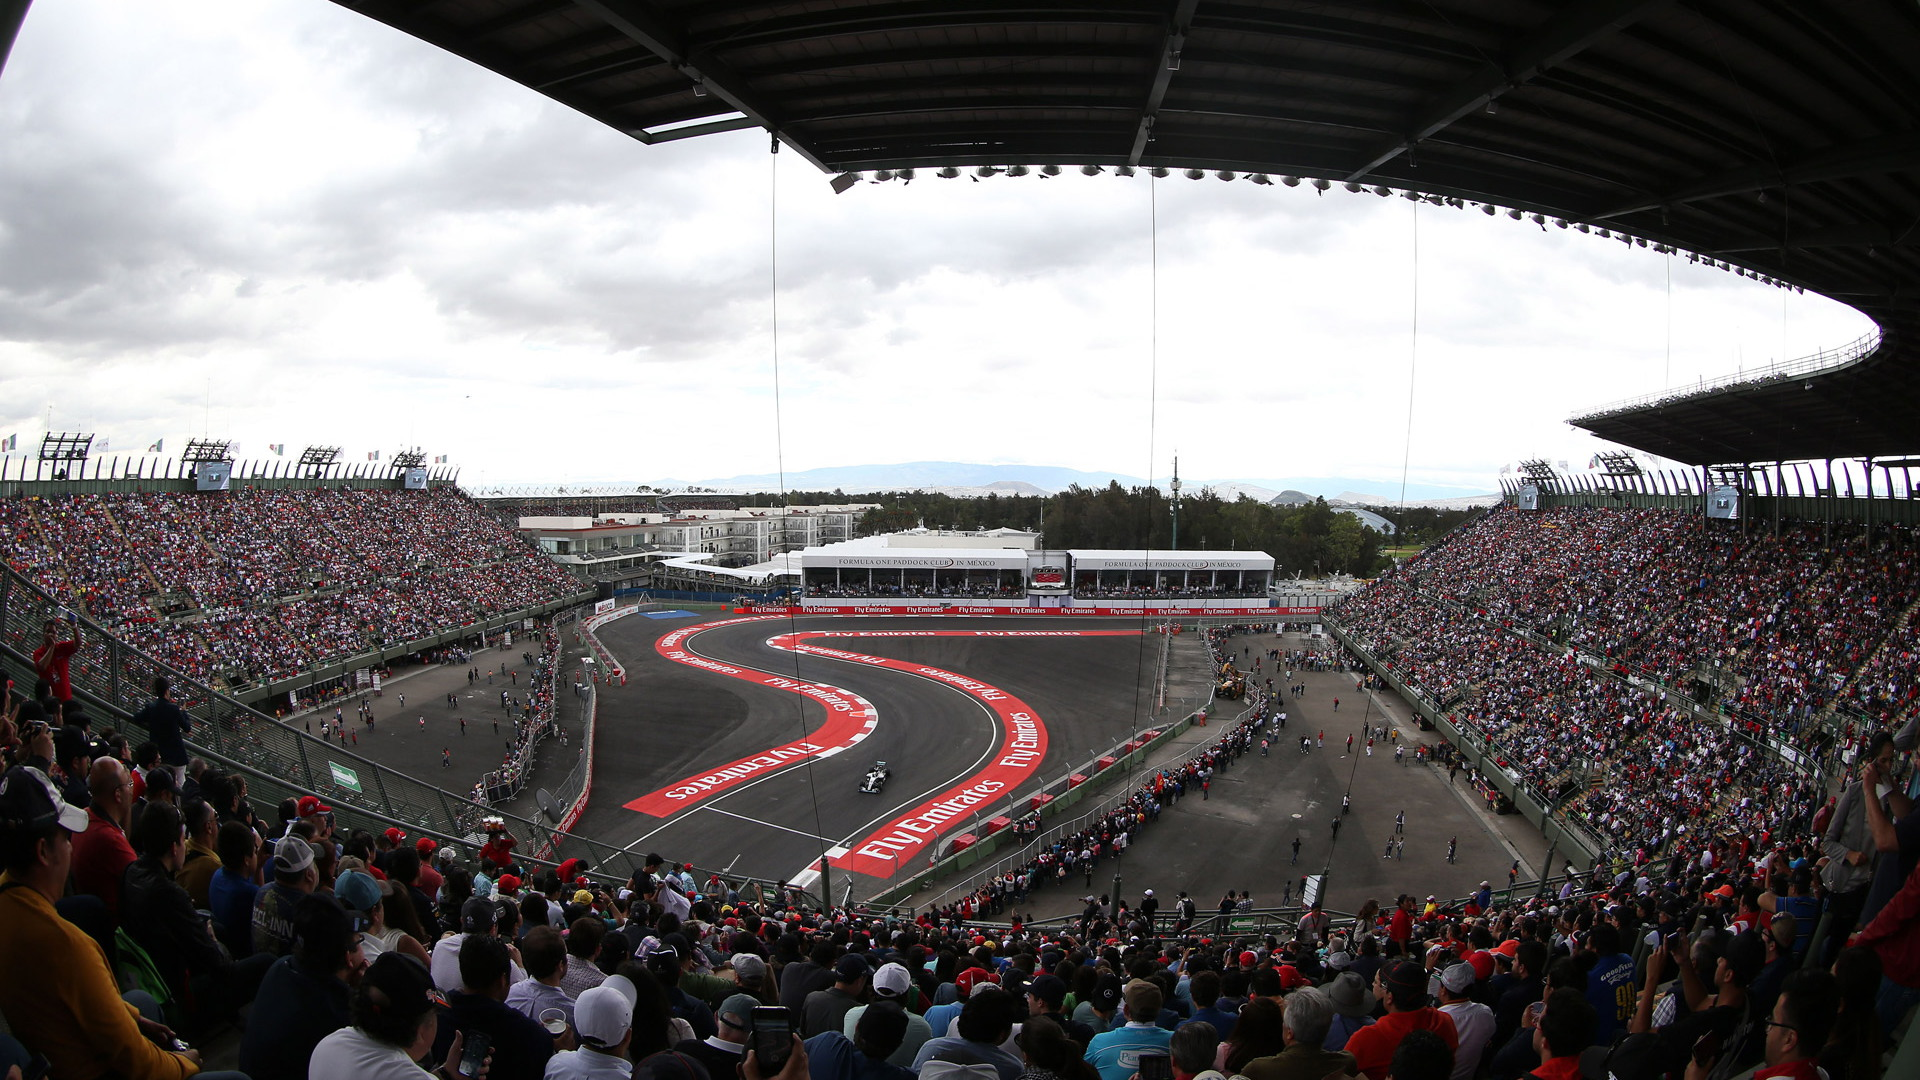 Autodromo Hermanos Rodriguez, home of the Formula 1 Mexican Grand Prix